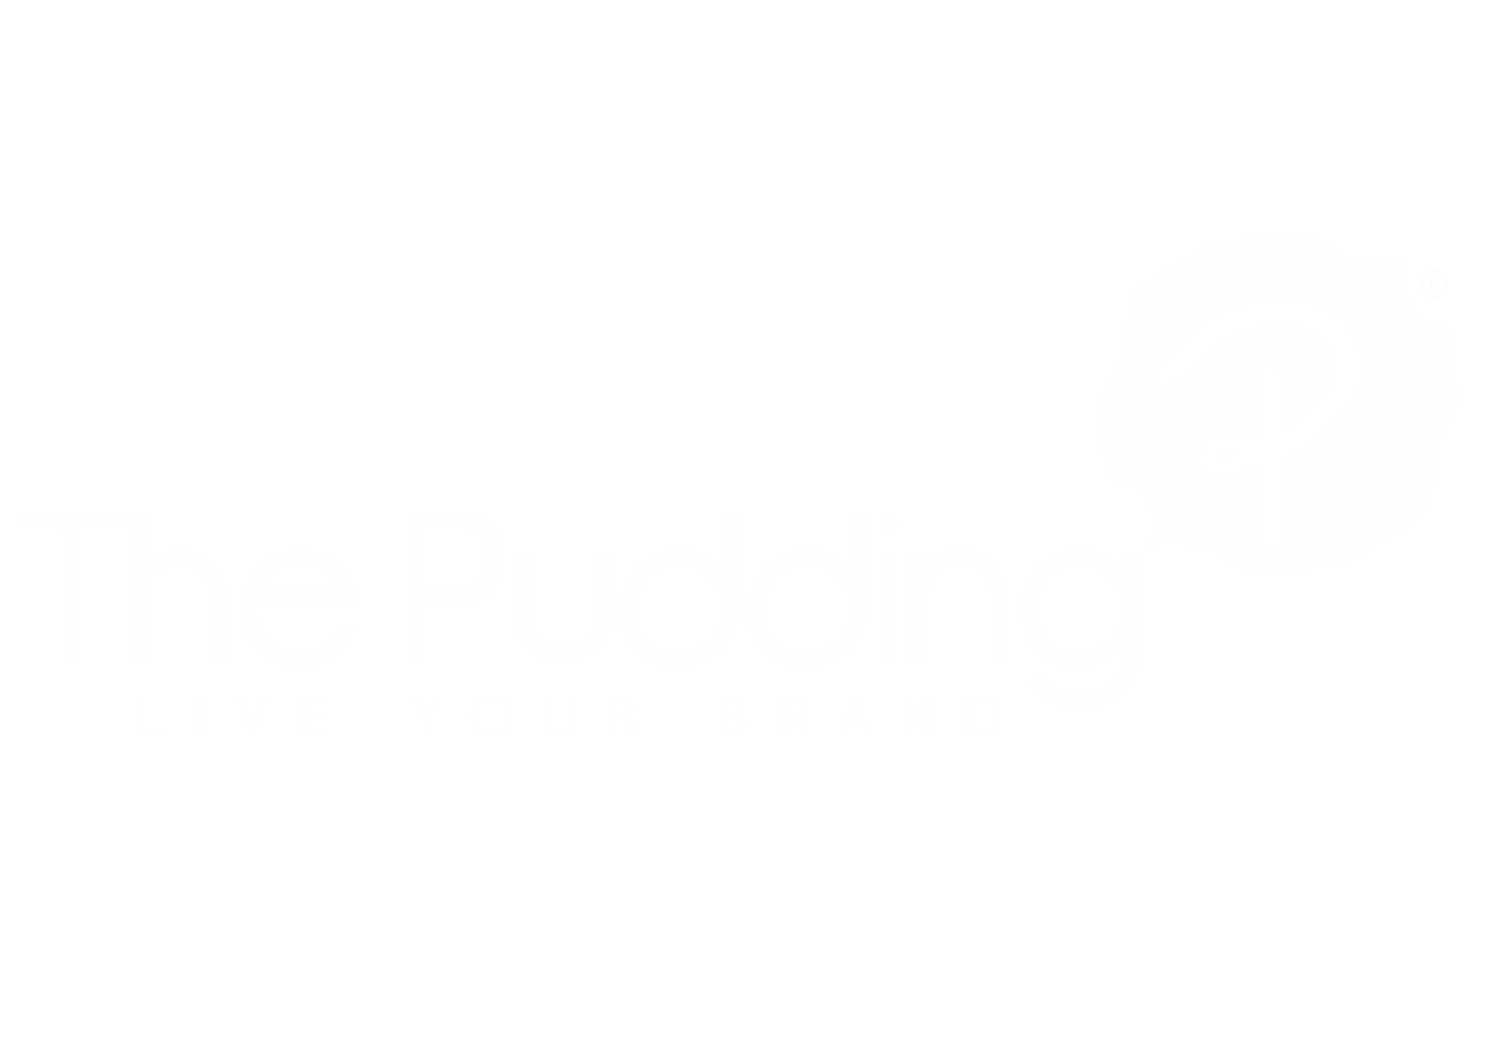 The Pudding Brand